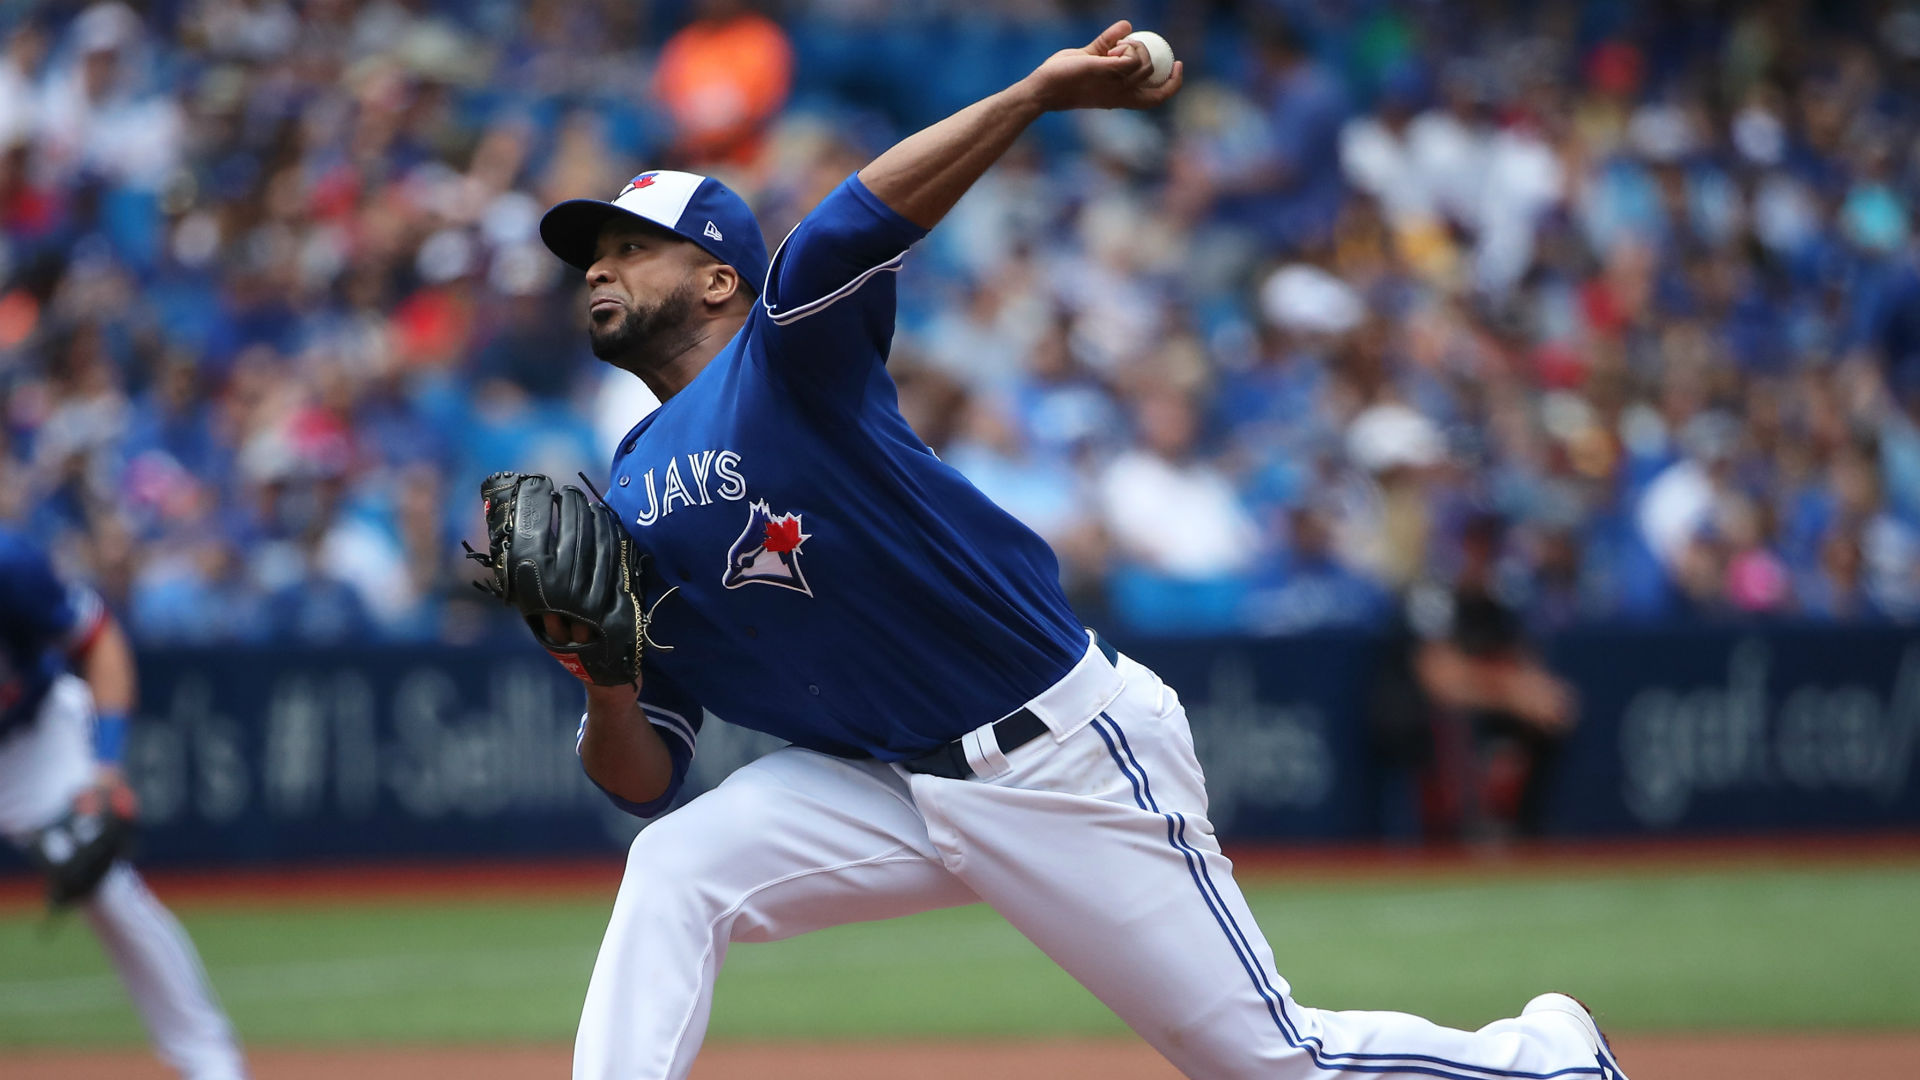 Francisco Liriano being traded to the Astros, pending a physical